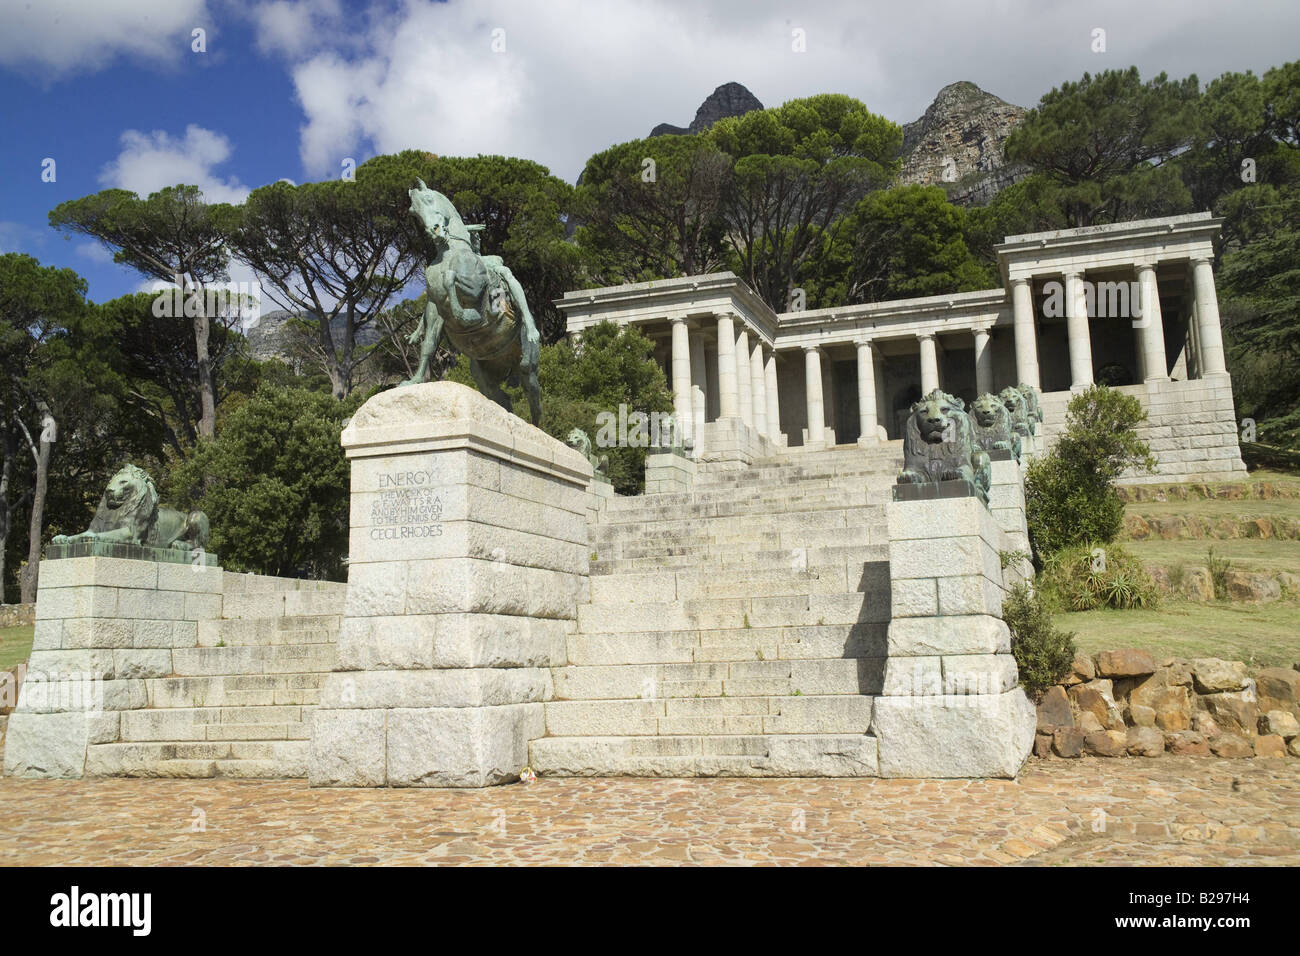 Cecil Rhodes Monument Cape Town South Africa Ref WP TARU 000661 0255 Date COMPULSORY CREDIT World Pictures Photoshot - Stock Image